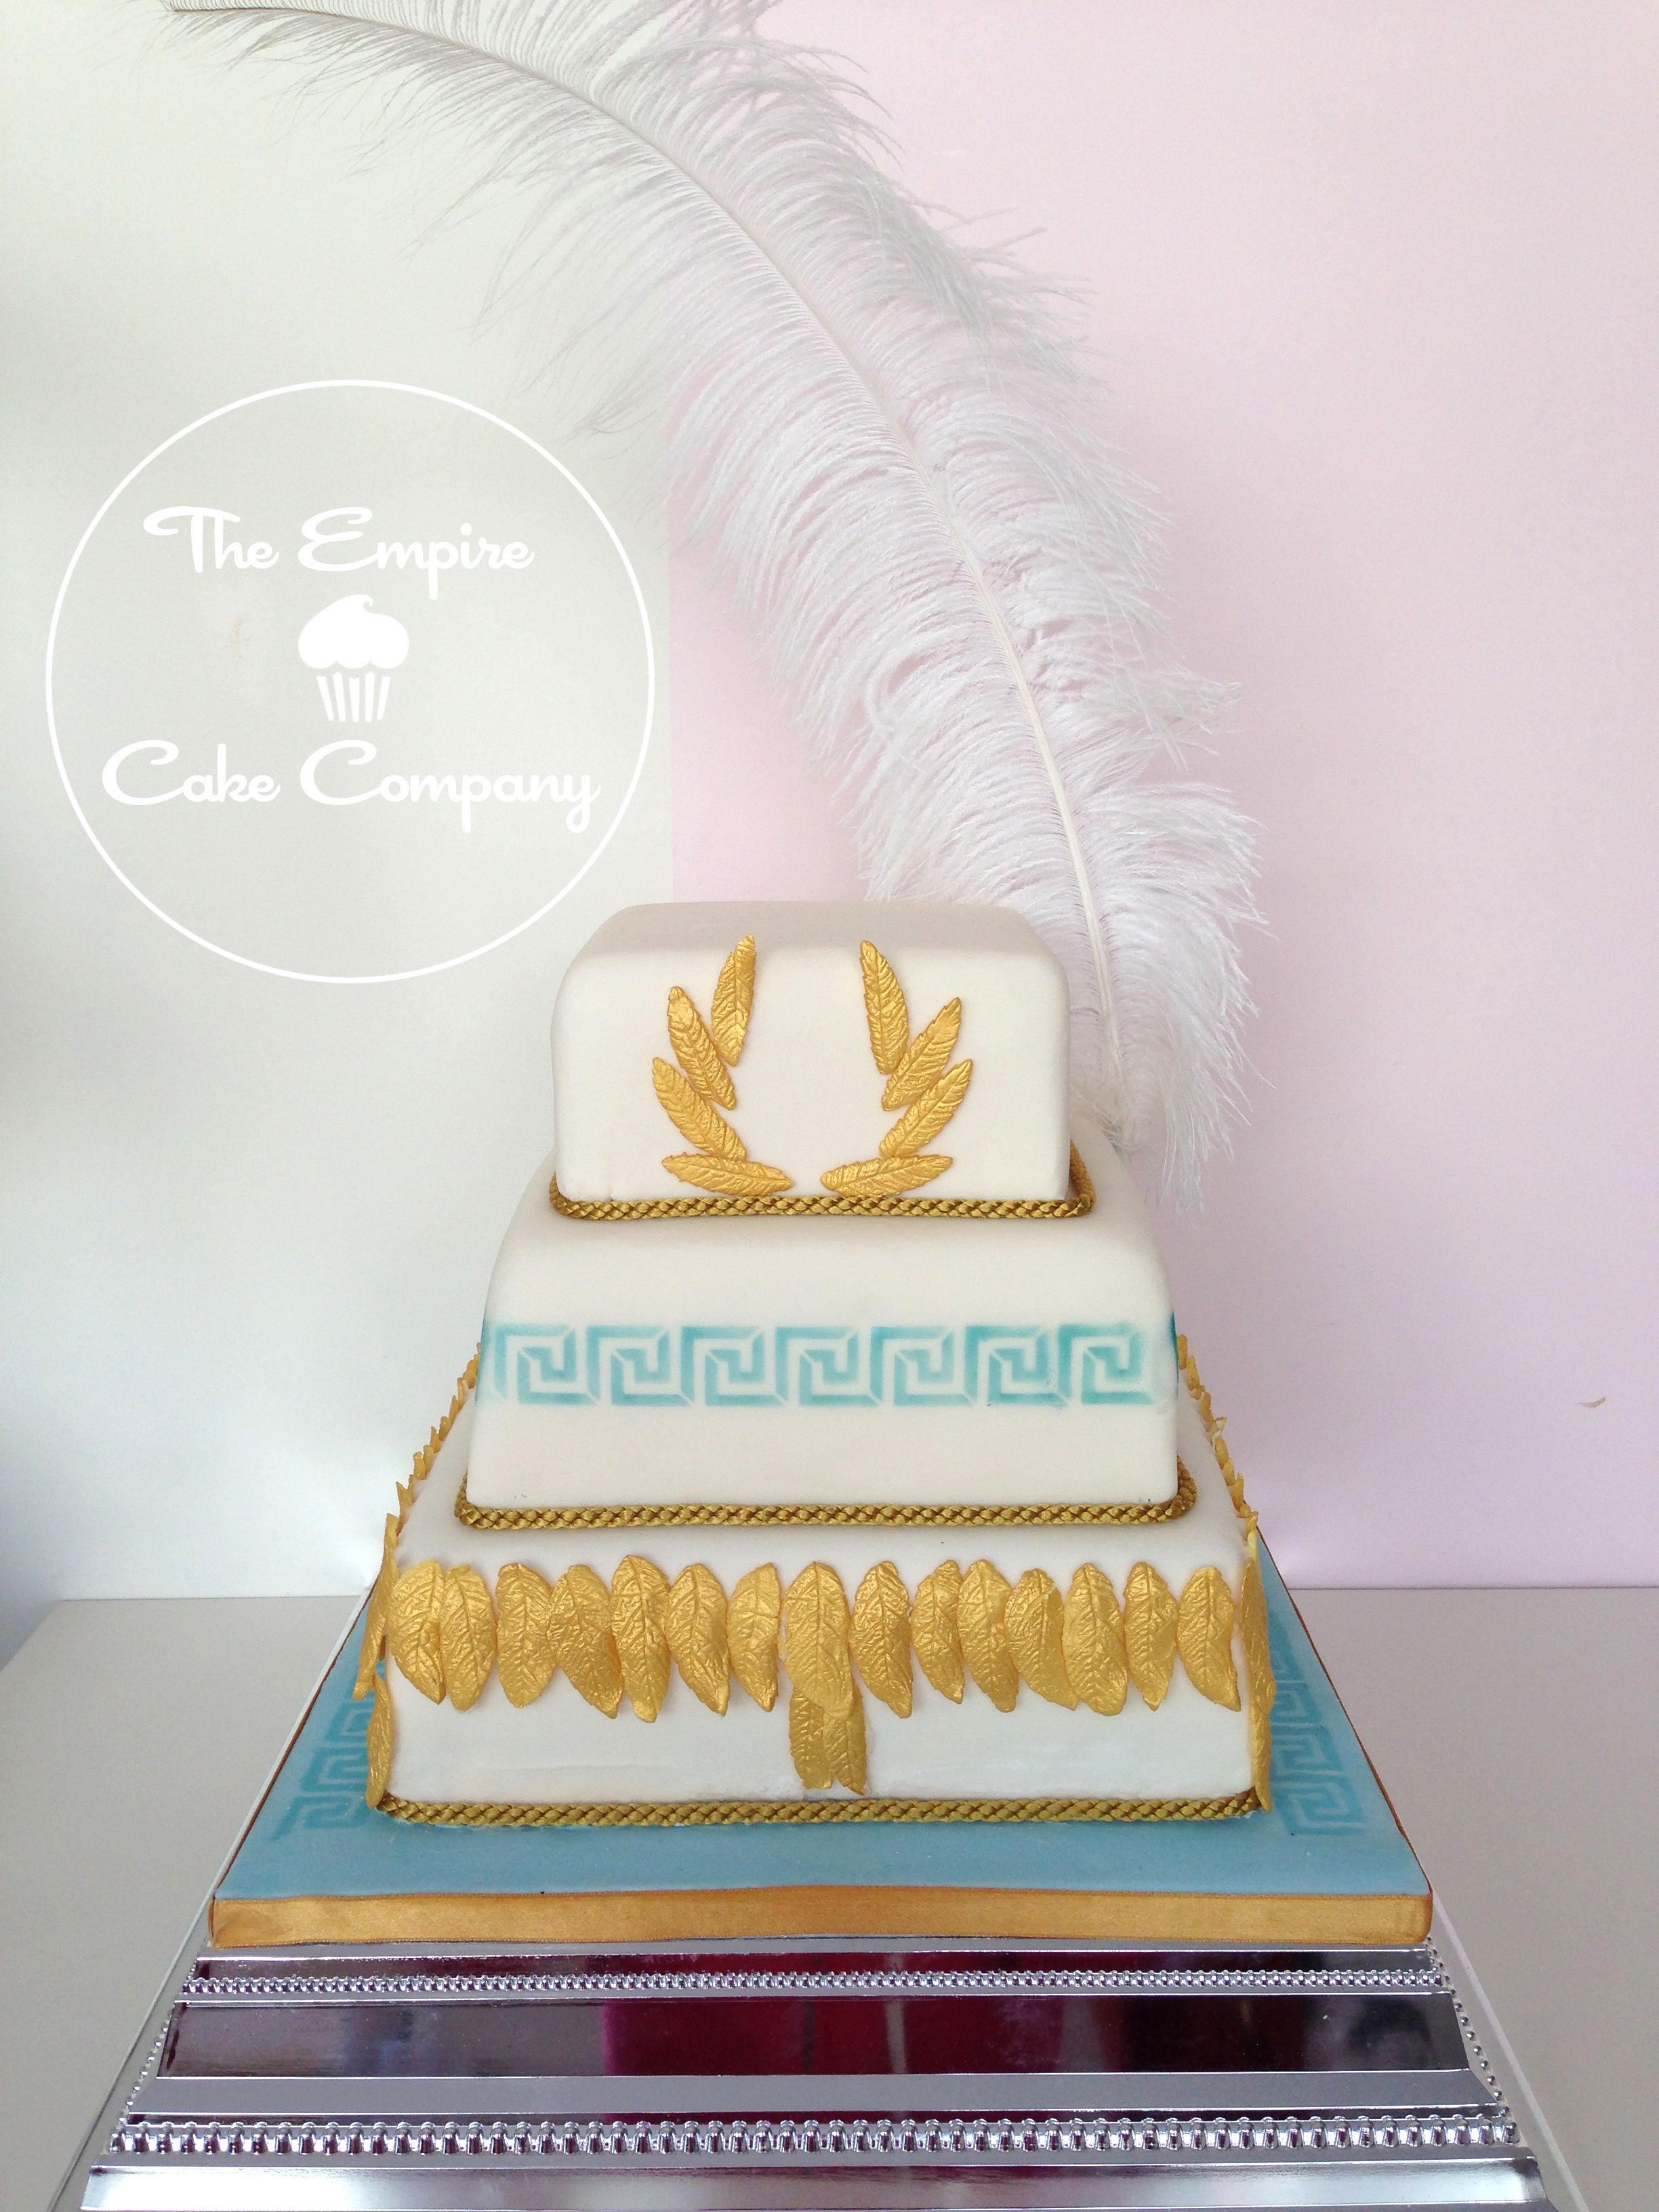 3 Tier Square Wedding Cake With Ancient Greek Themed Design And